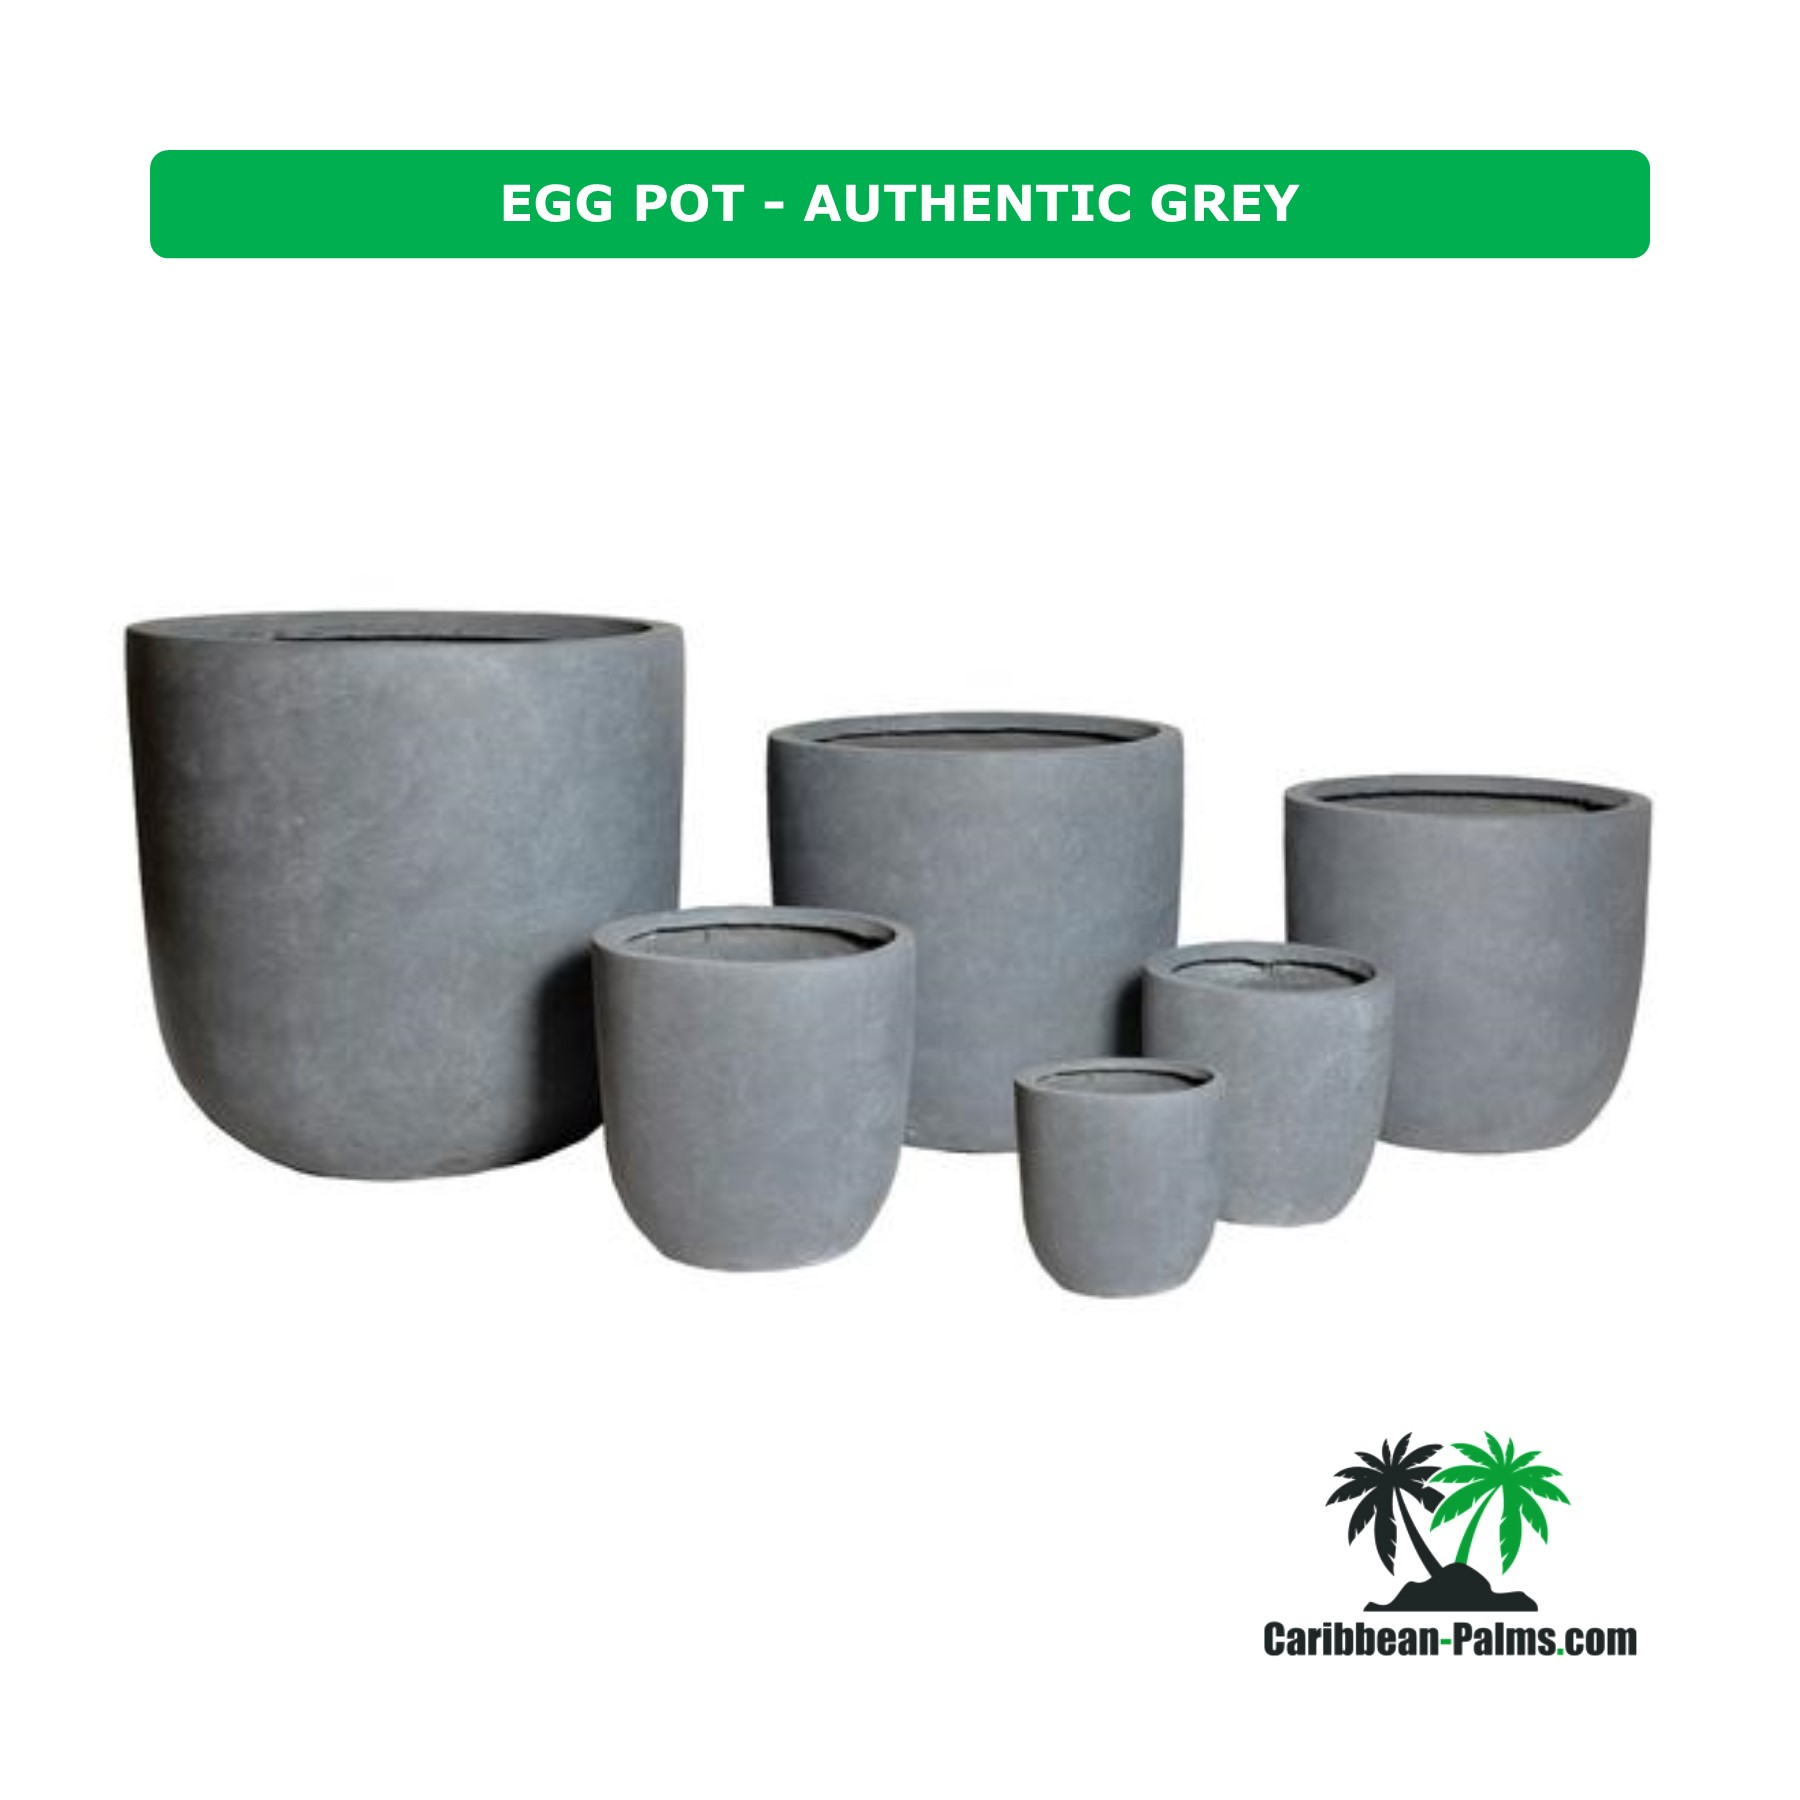 EGG POT AUTHENTIC GREY